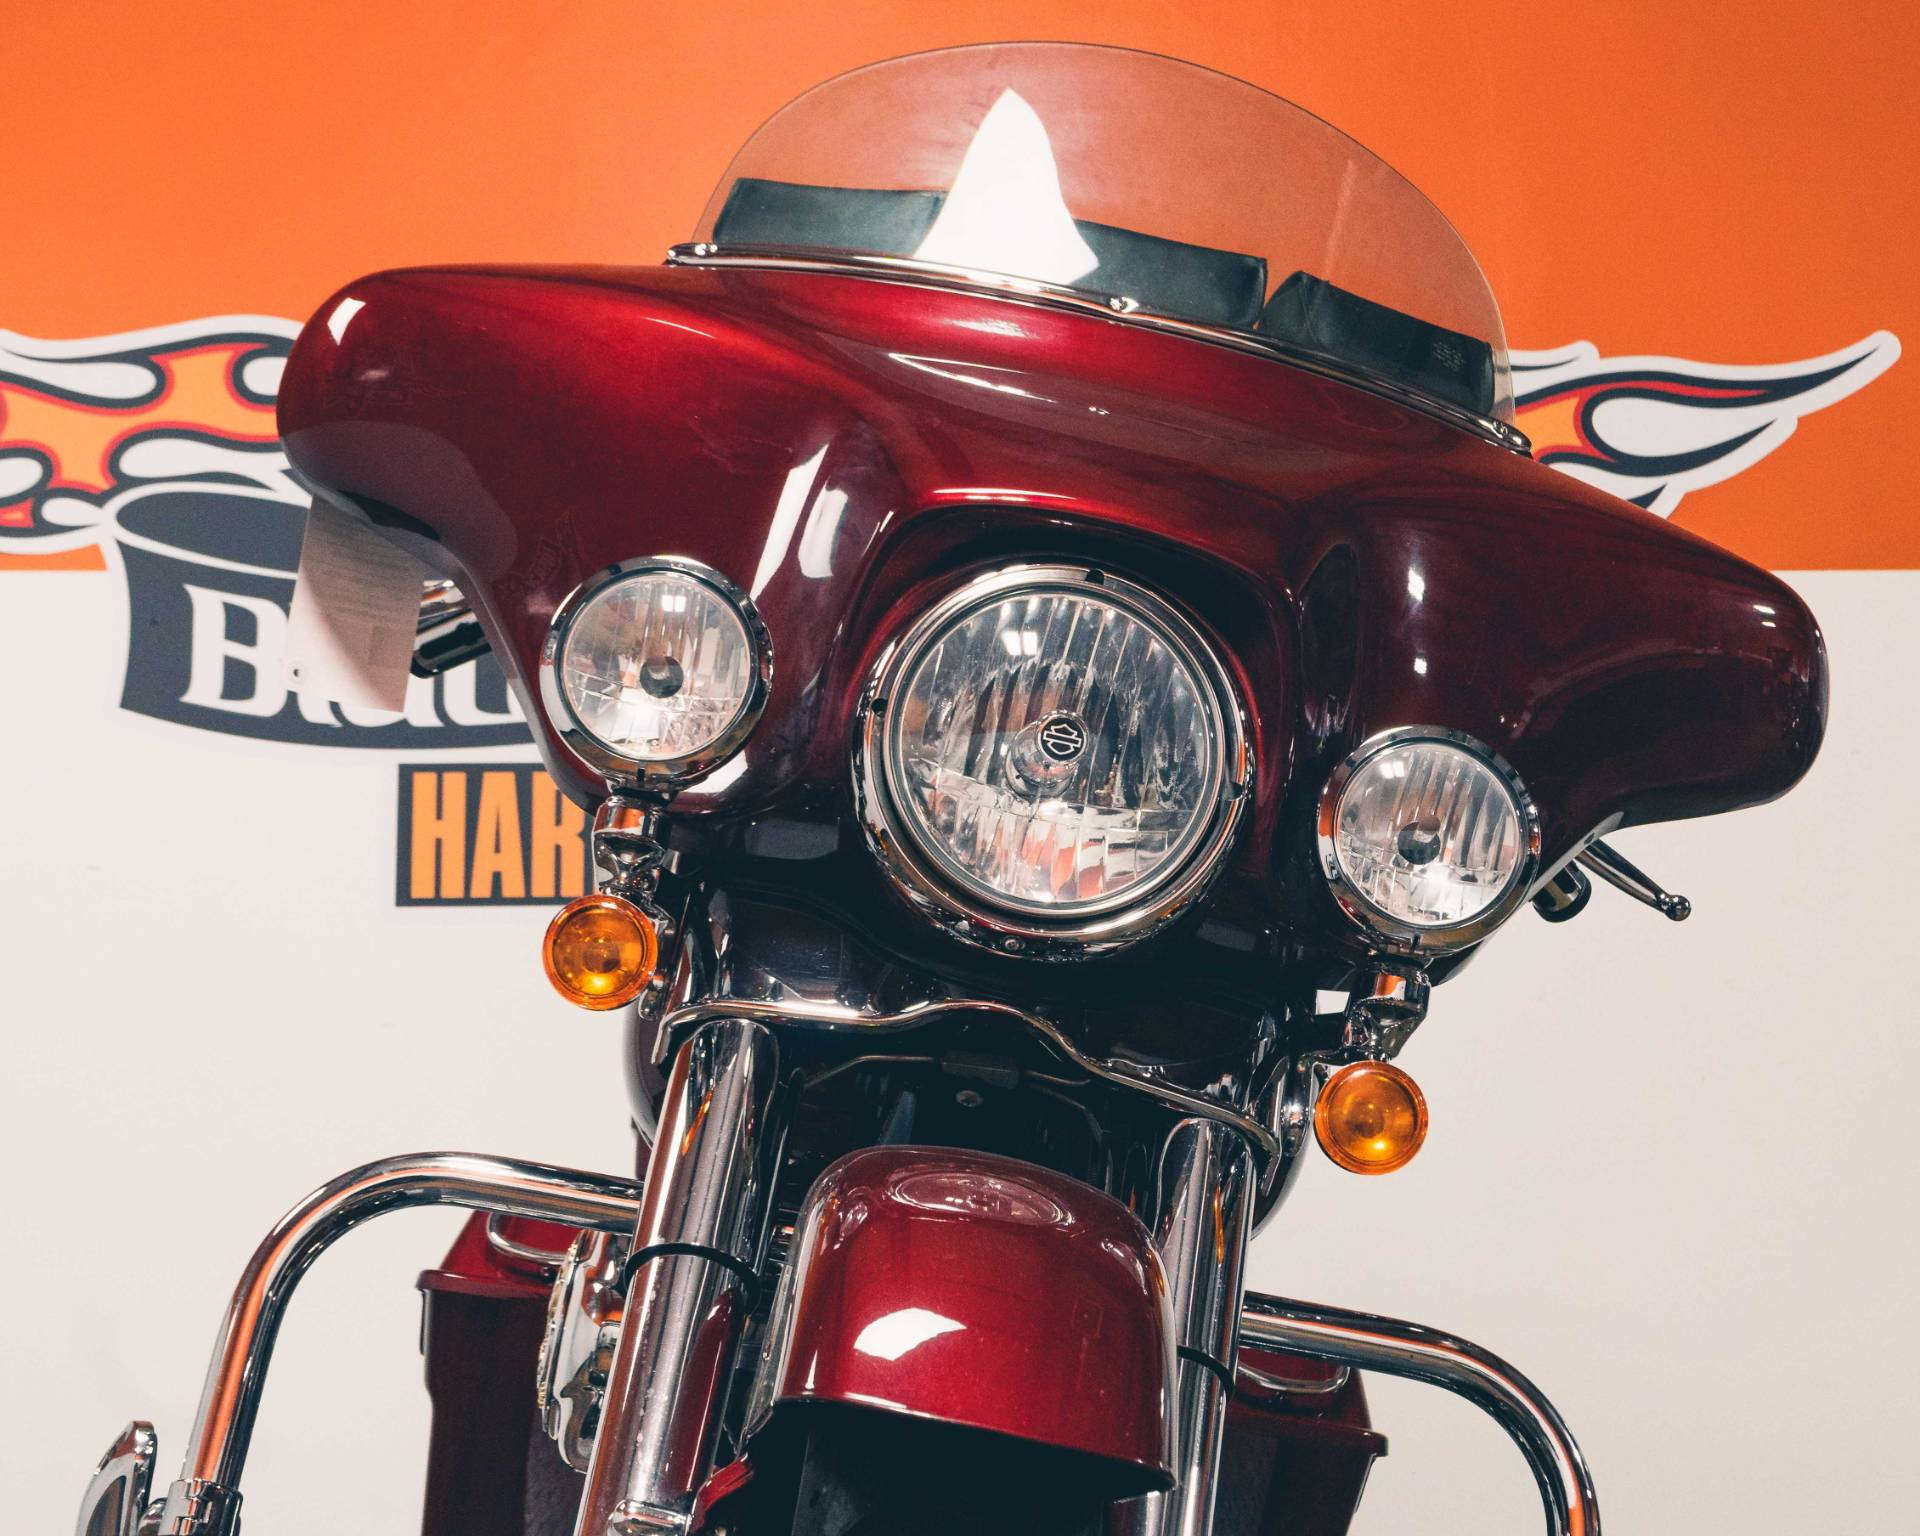 2009 Harley-Davidson Street Glide in Marion, Illinois - Photo 6